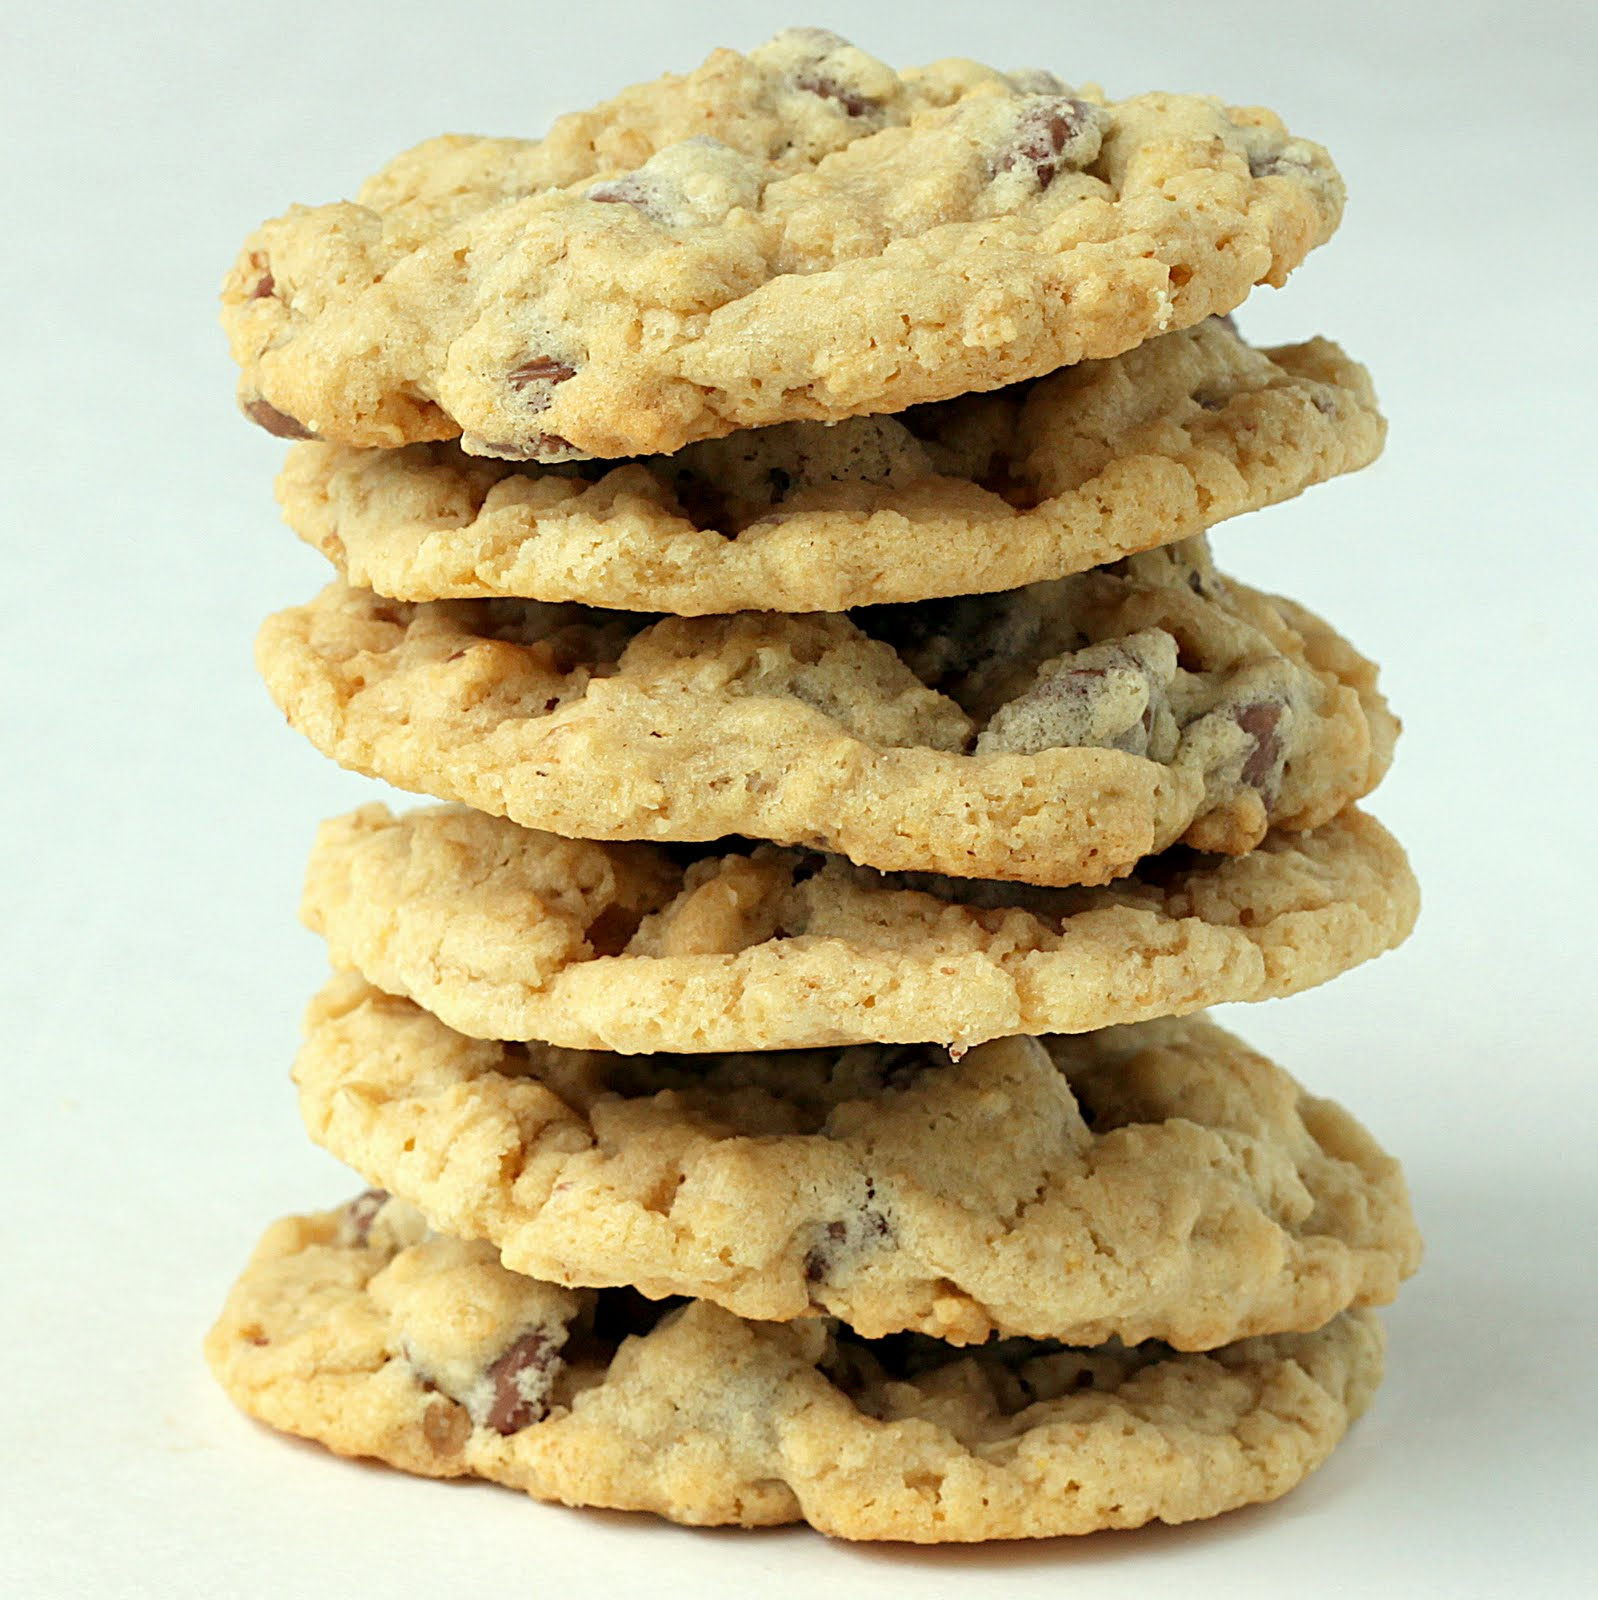 ... Crafty Corner: Most Amazing Oatmeal Chocolate Chip Cookies EVER